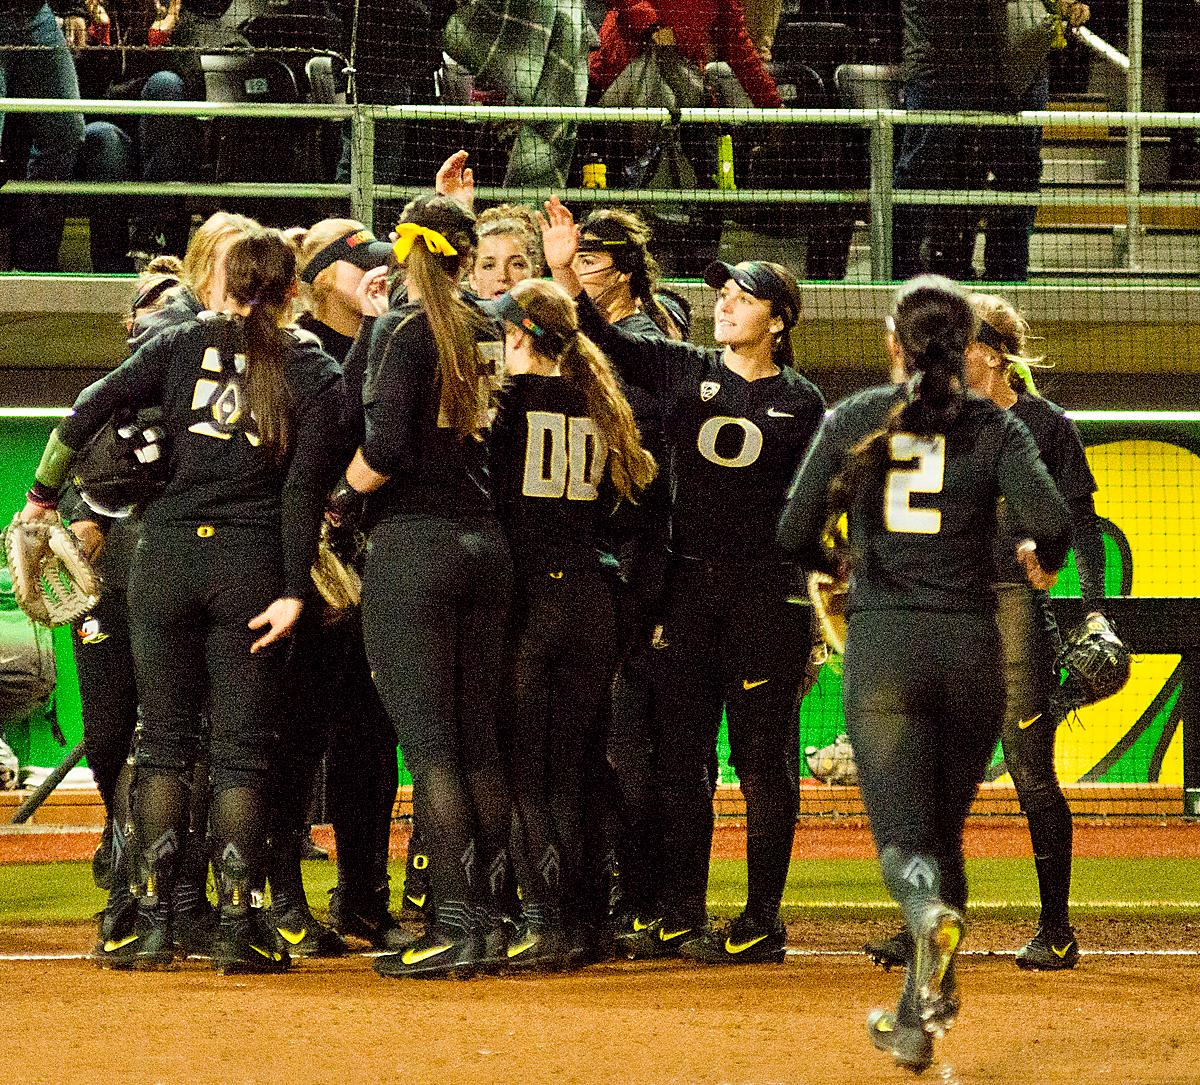 The Ducks celebrate their win over the Huskies. In Game Two of a three-game series, the University of Oregon Ducks softball team defeated the University of Washington Huskies 4-1 Friday night in Jane Sanders Stadium. Danica Mercado (#2), Alexis Mack (#10) and Mia Camuso (#7) all scored in the win, Mack twice. The Ducks play the Huskies for the tie breaker on Saturday with the first pitch at noon. Photo by Dan Morrison, Oregon News Lab